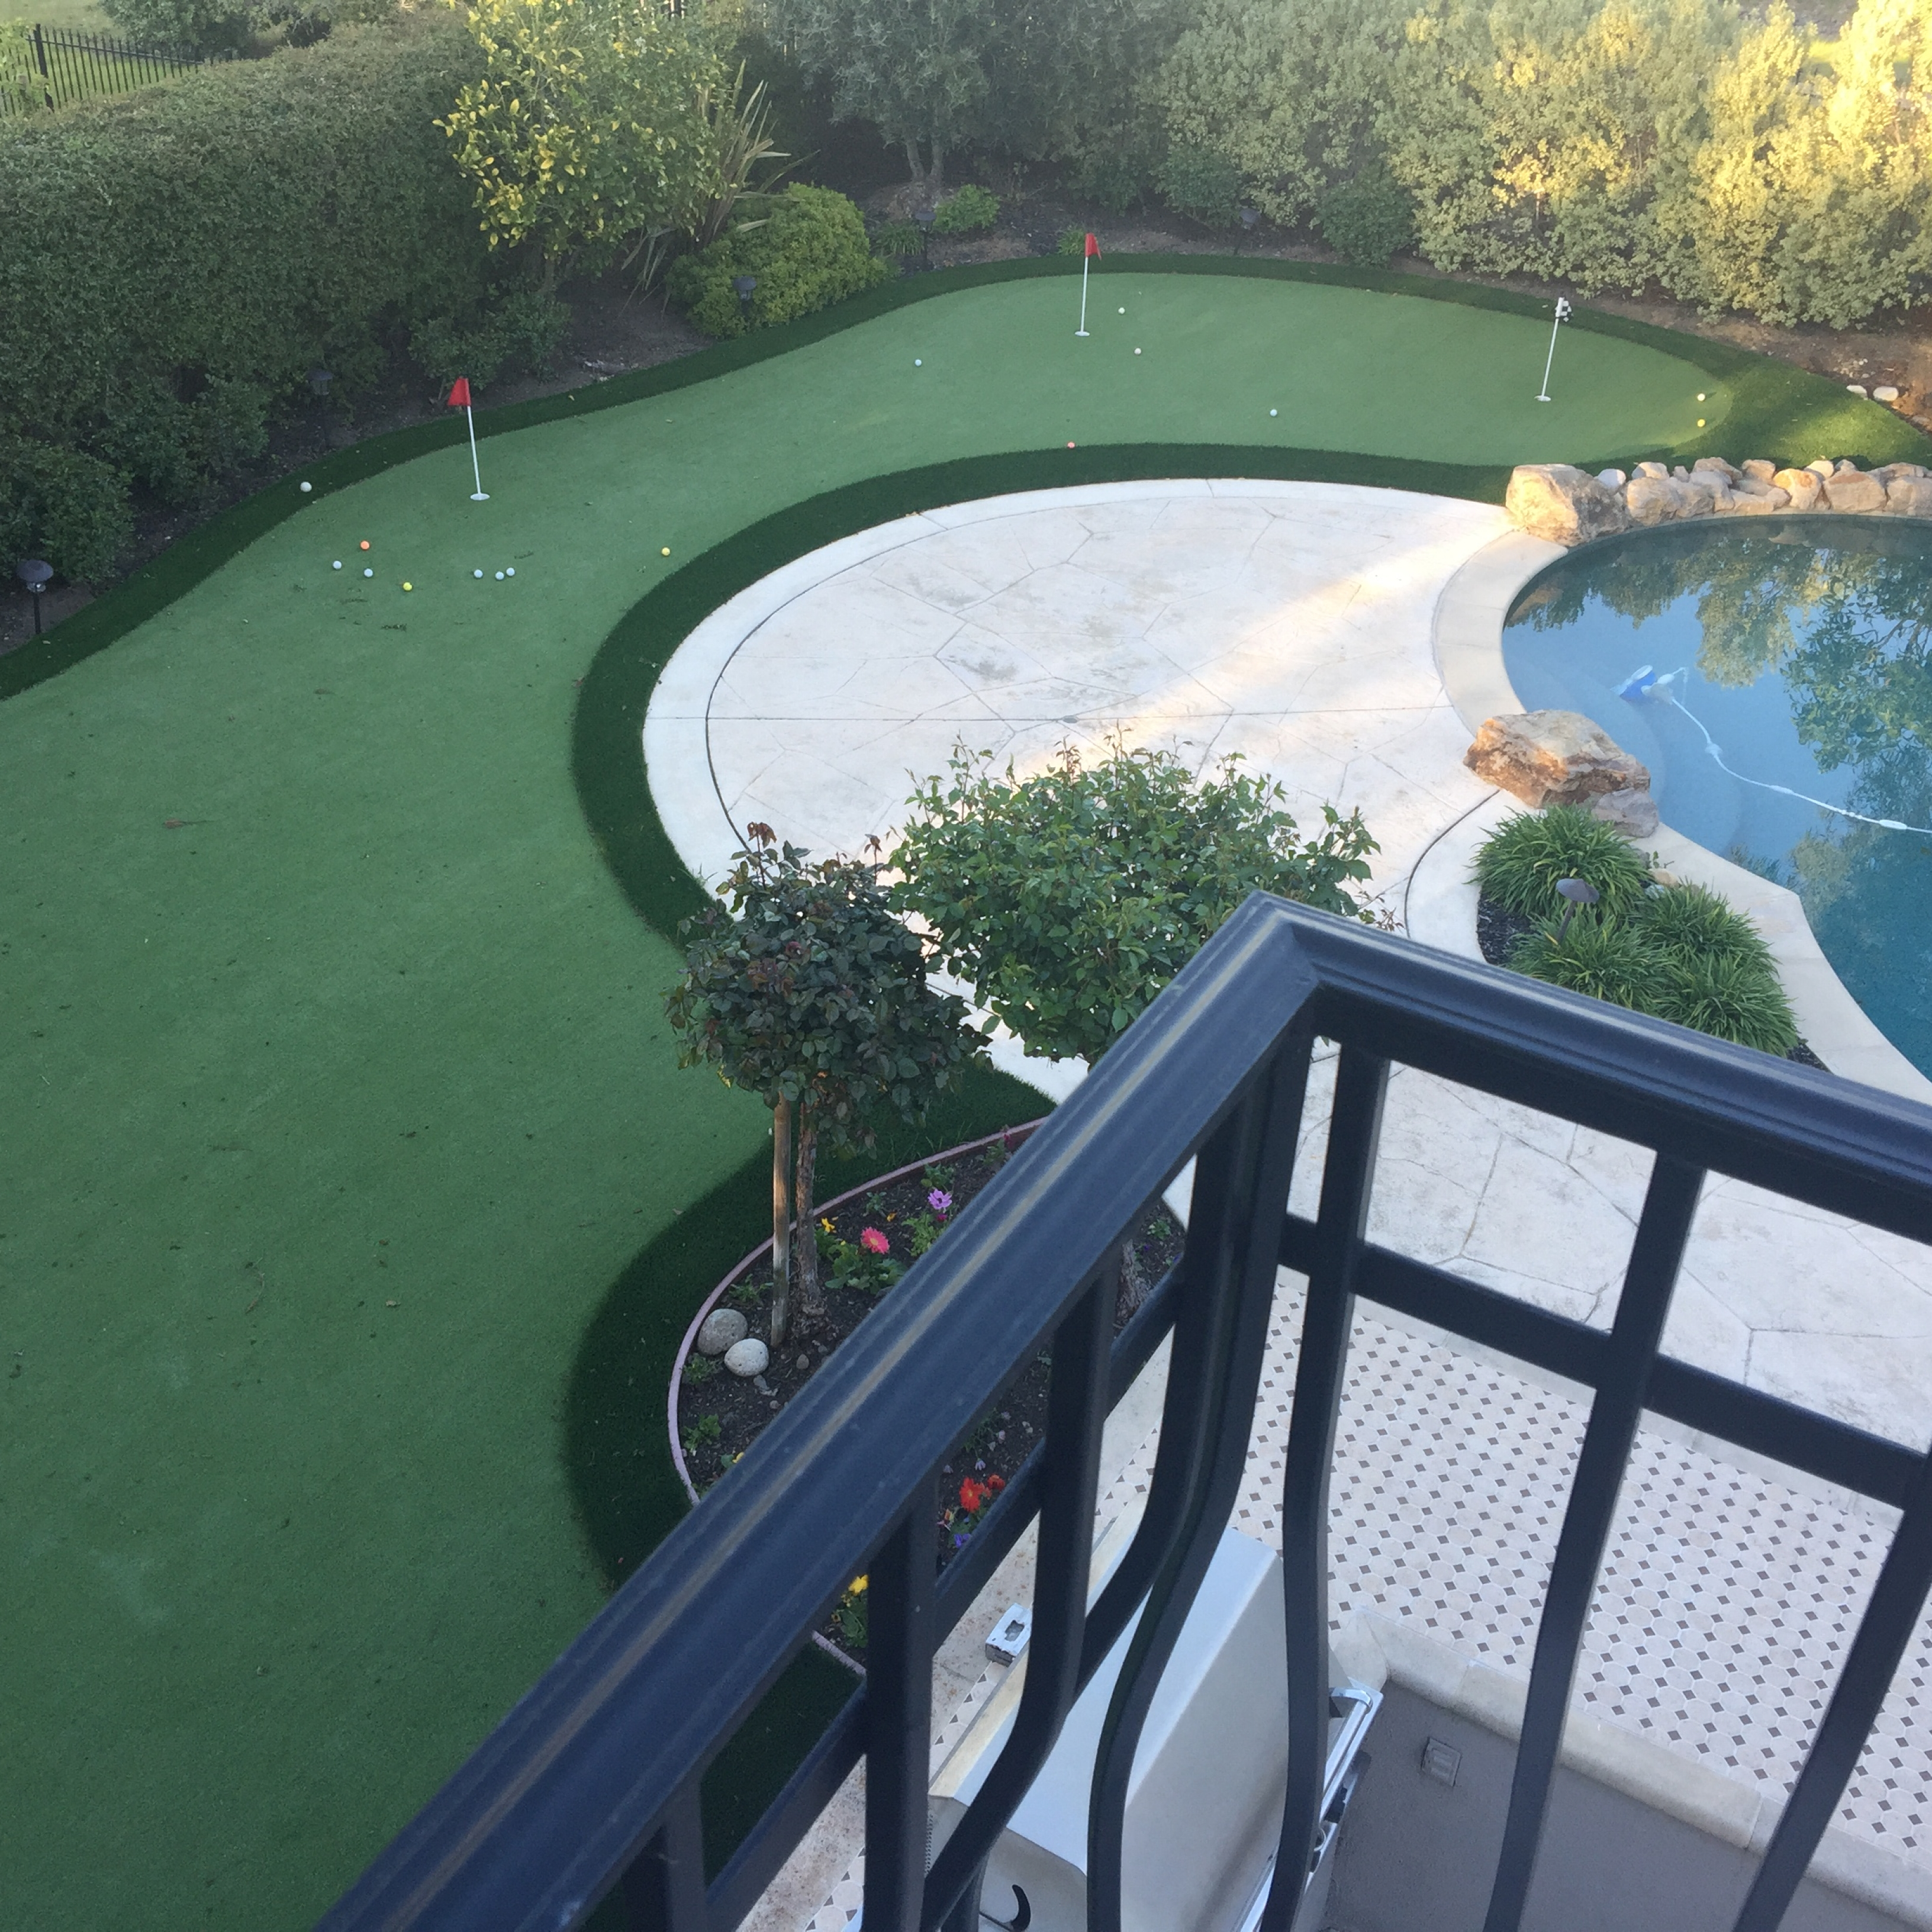 Looking at my artificial grass putting greens from my balcony! Putt-60 Bi-color review. Photo by Robert Anderson Dec 13 2:25 PM